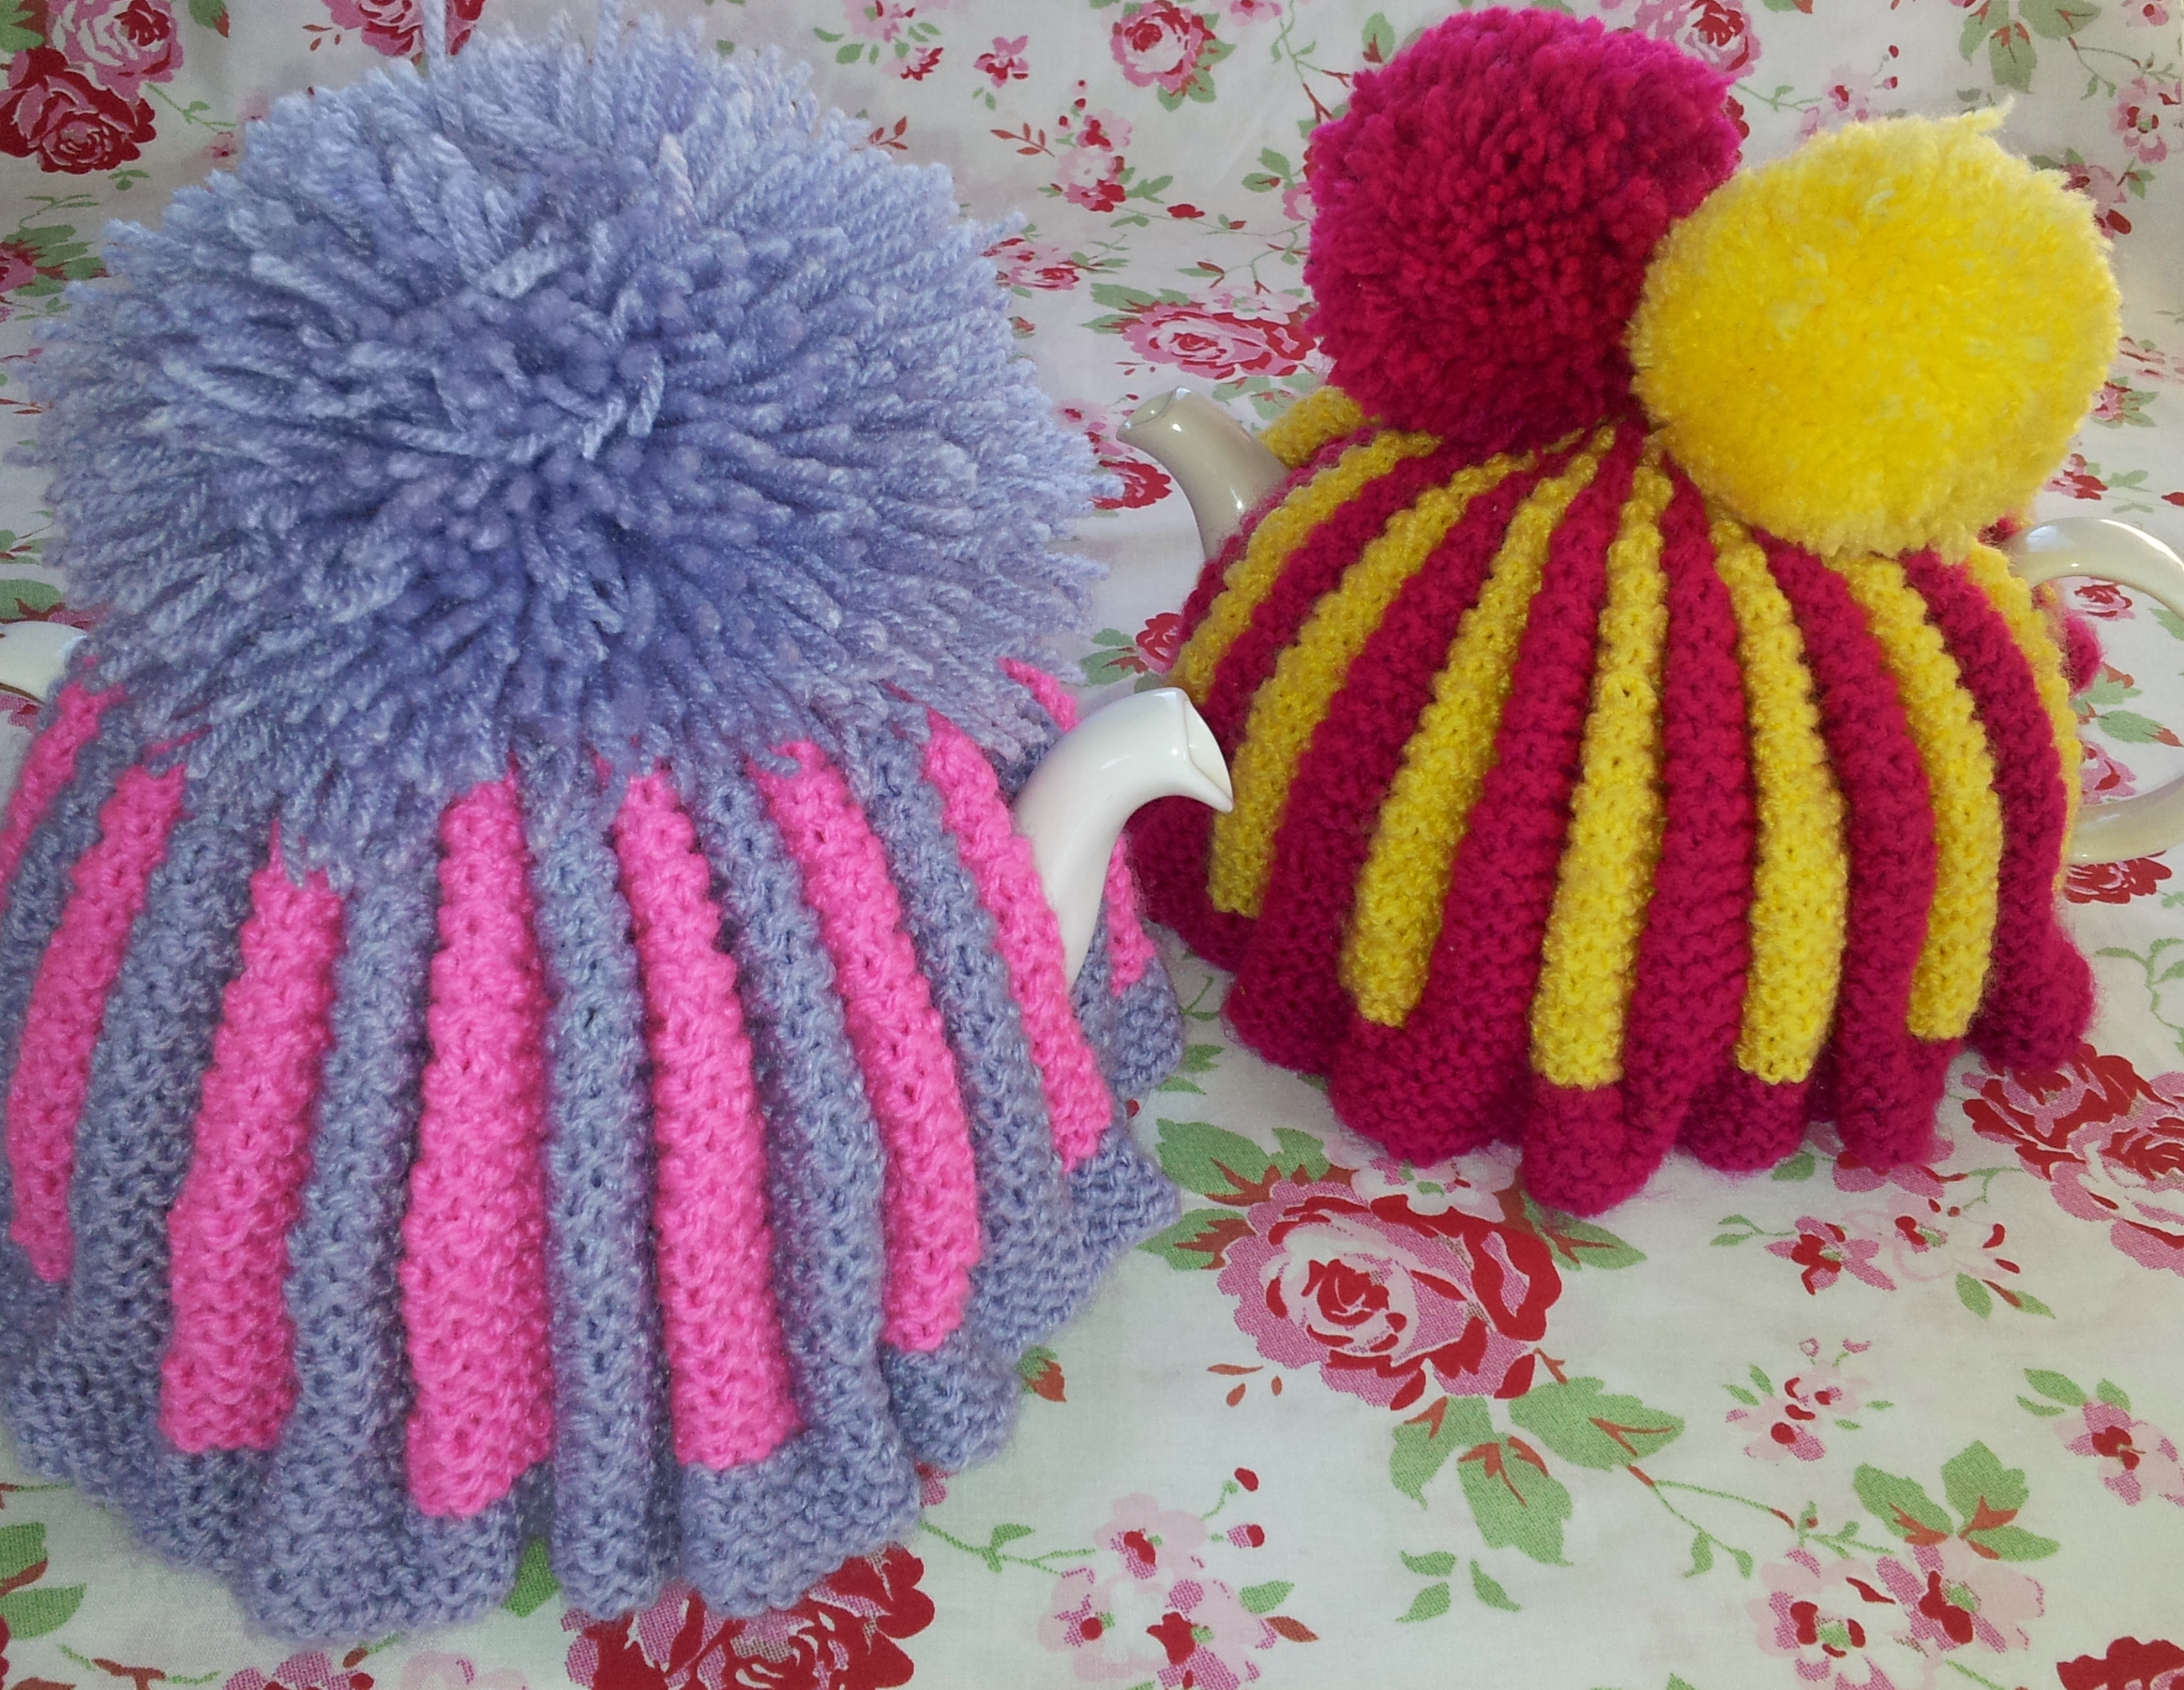 My Vintage Style Knitted Tea Cosy (Cozy) thestitchsharer